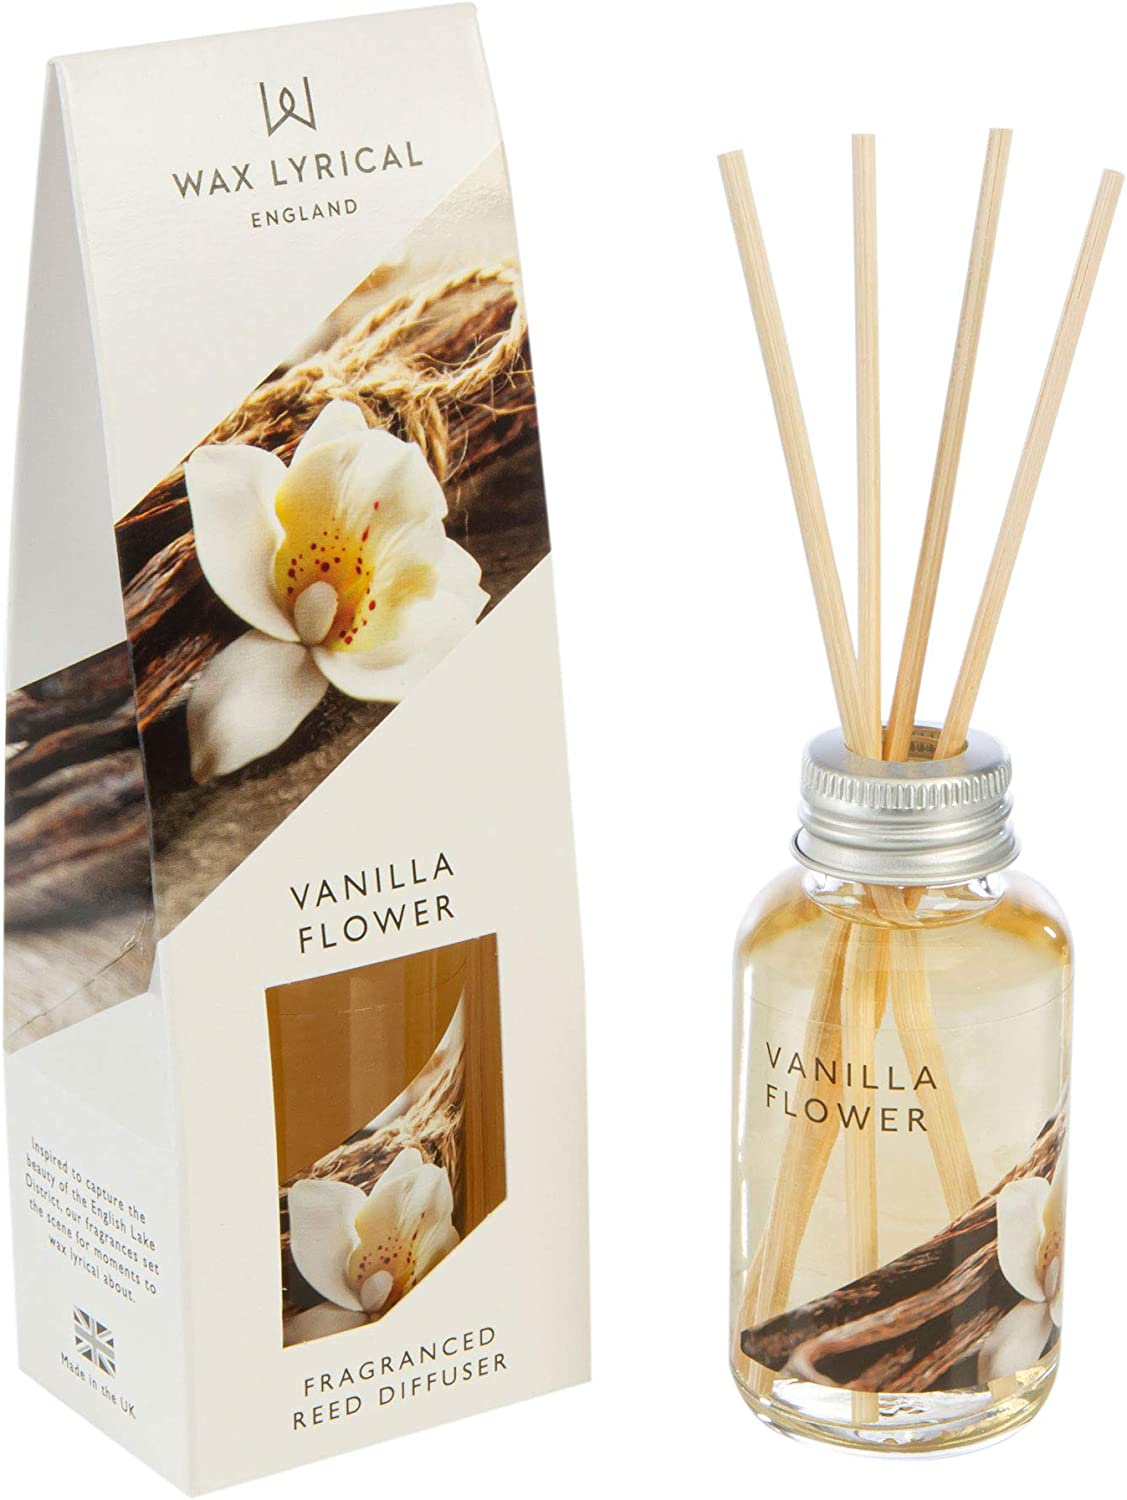 Wax Lyrical Small Vanilla Flower Candle In Glass Jar with Silver Lid